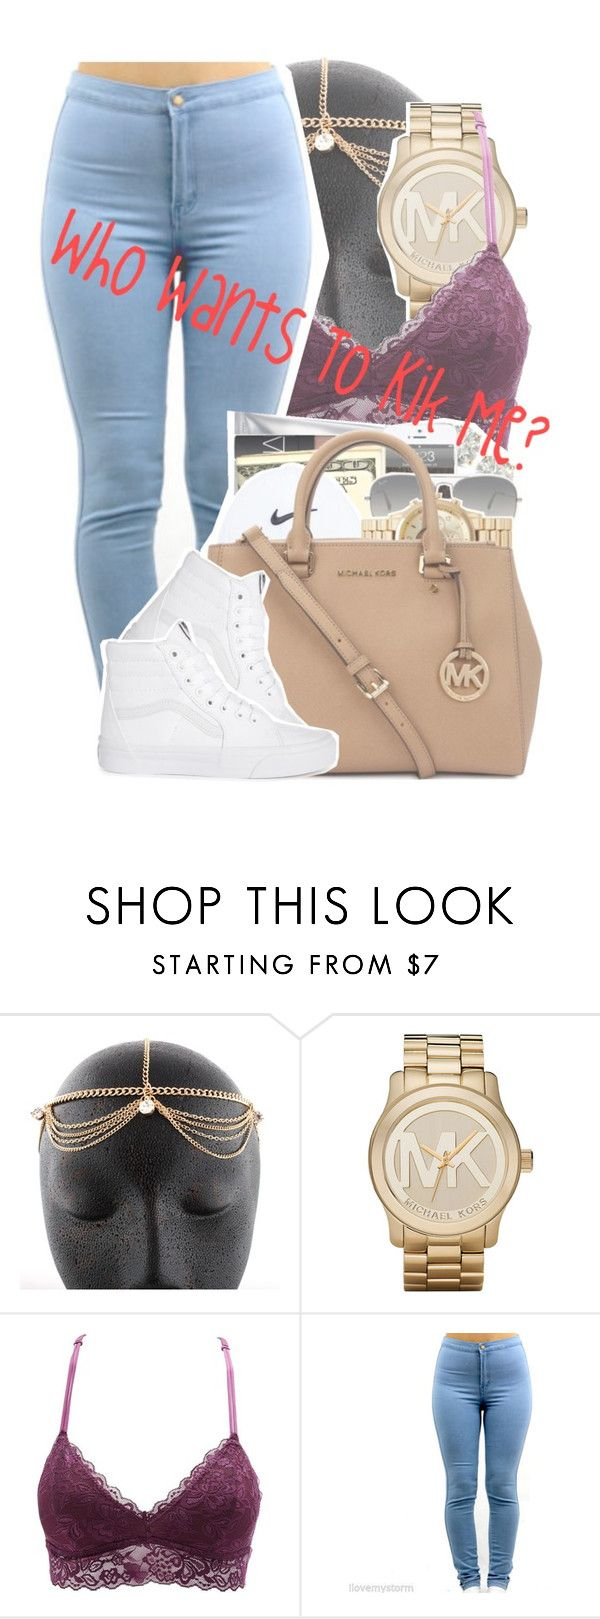 """""""Who wants to kik;; message me!"""" by sage-forever ❤ liked on Polyvore featuring Michael Kors, Charlotte Russe, Ray-Ban, Vans, kik and kikmessenger"""